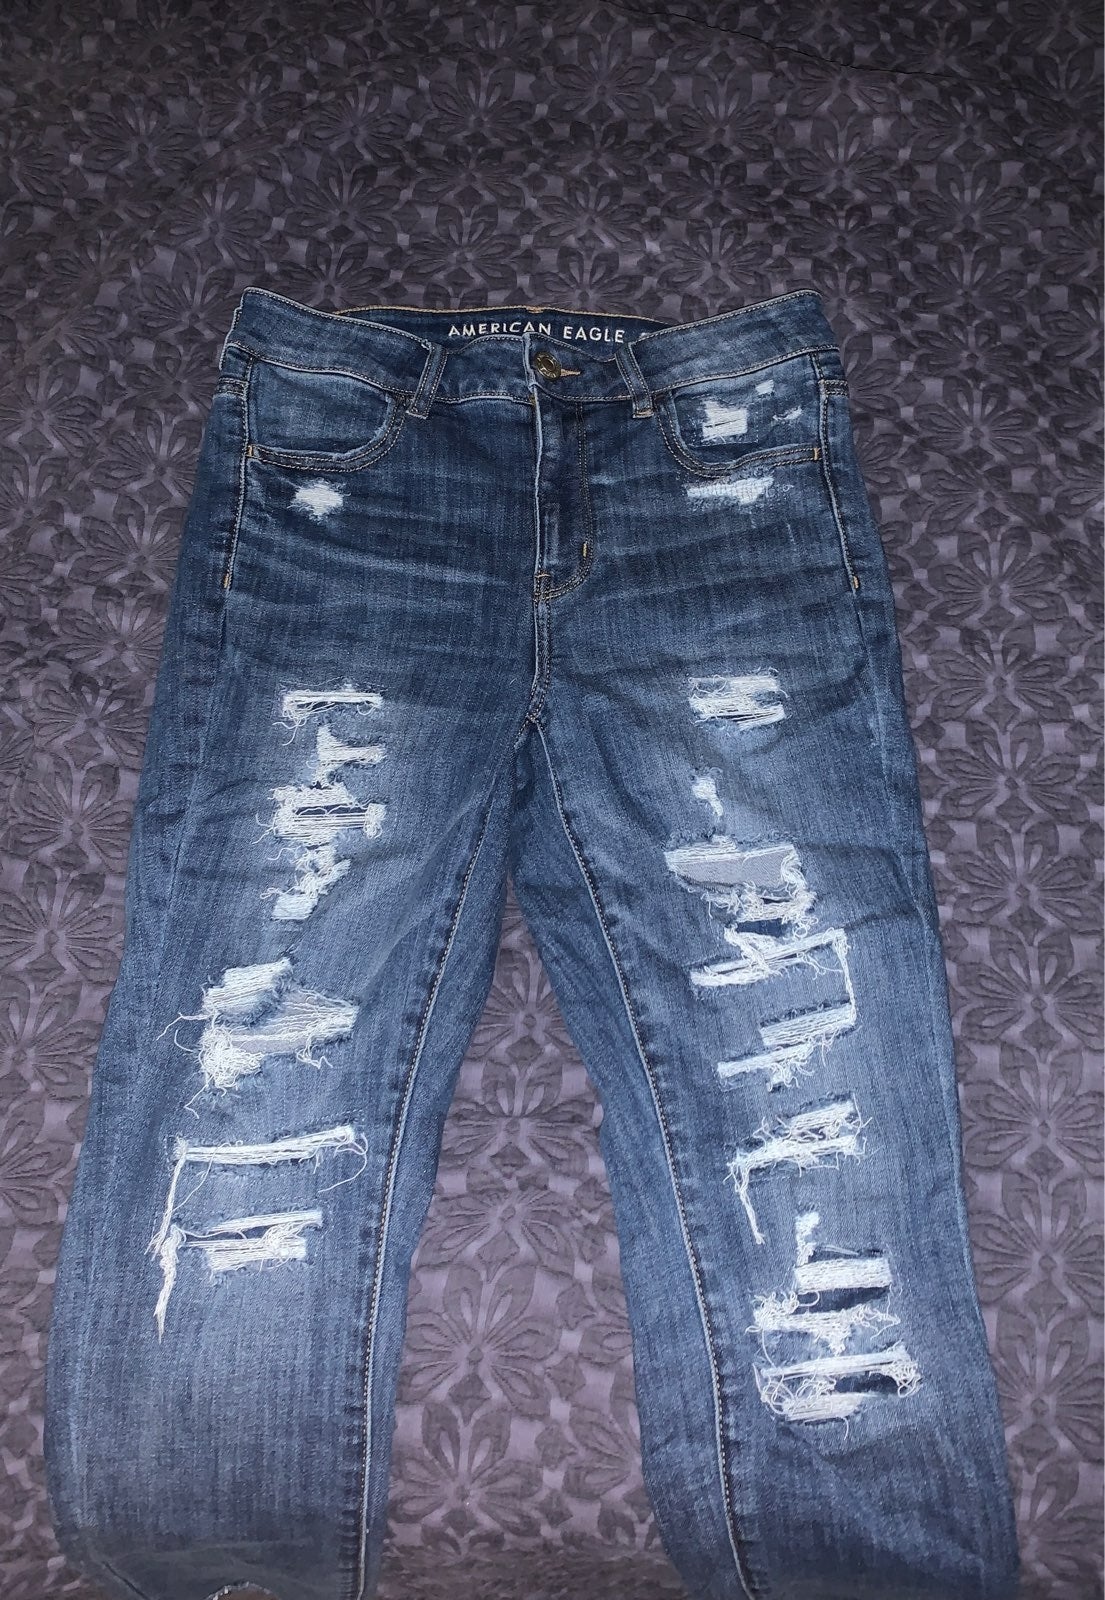 American Eagle Jeans size